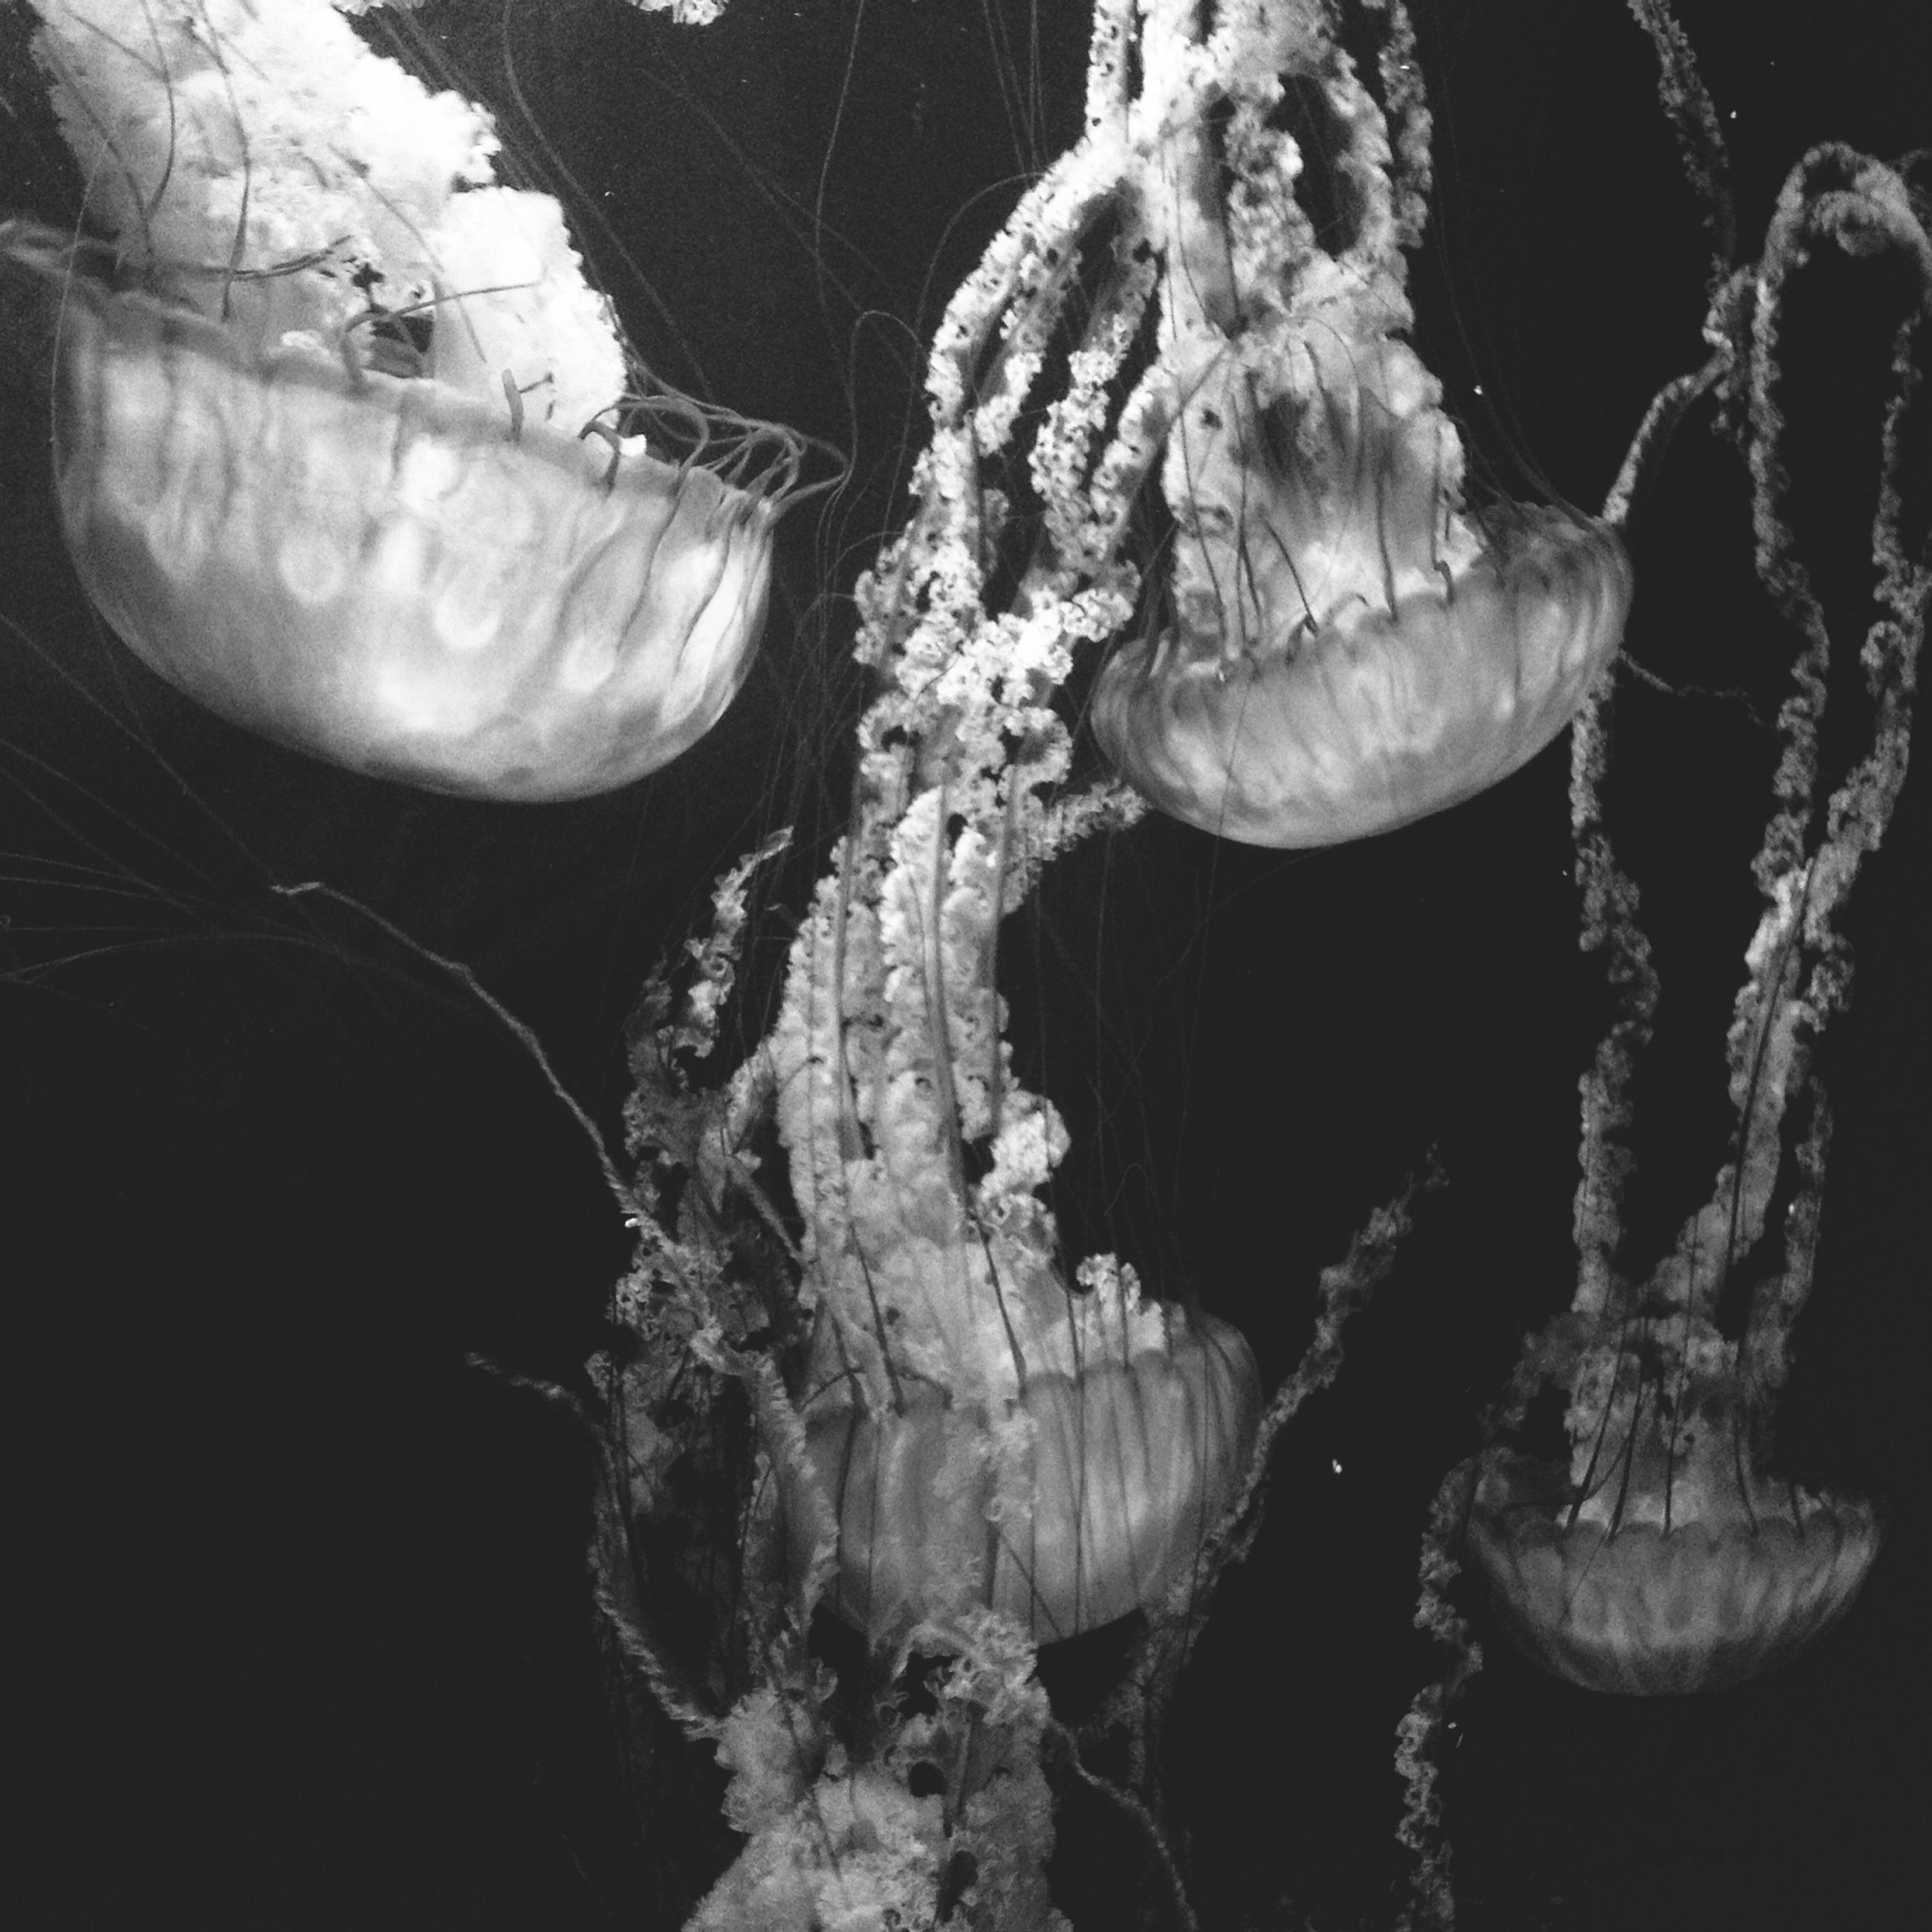 water, close-up, nature, animal themes, beauty in nature, wildlife, jellyfish, reflection, underwater, sea life, studio shot, no people, animals in the wild, black background, fragility, outdoors, plant, sea, growth, freshness